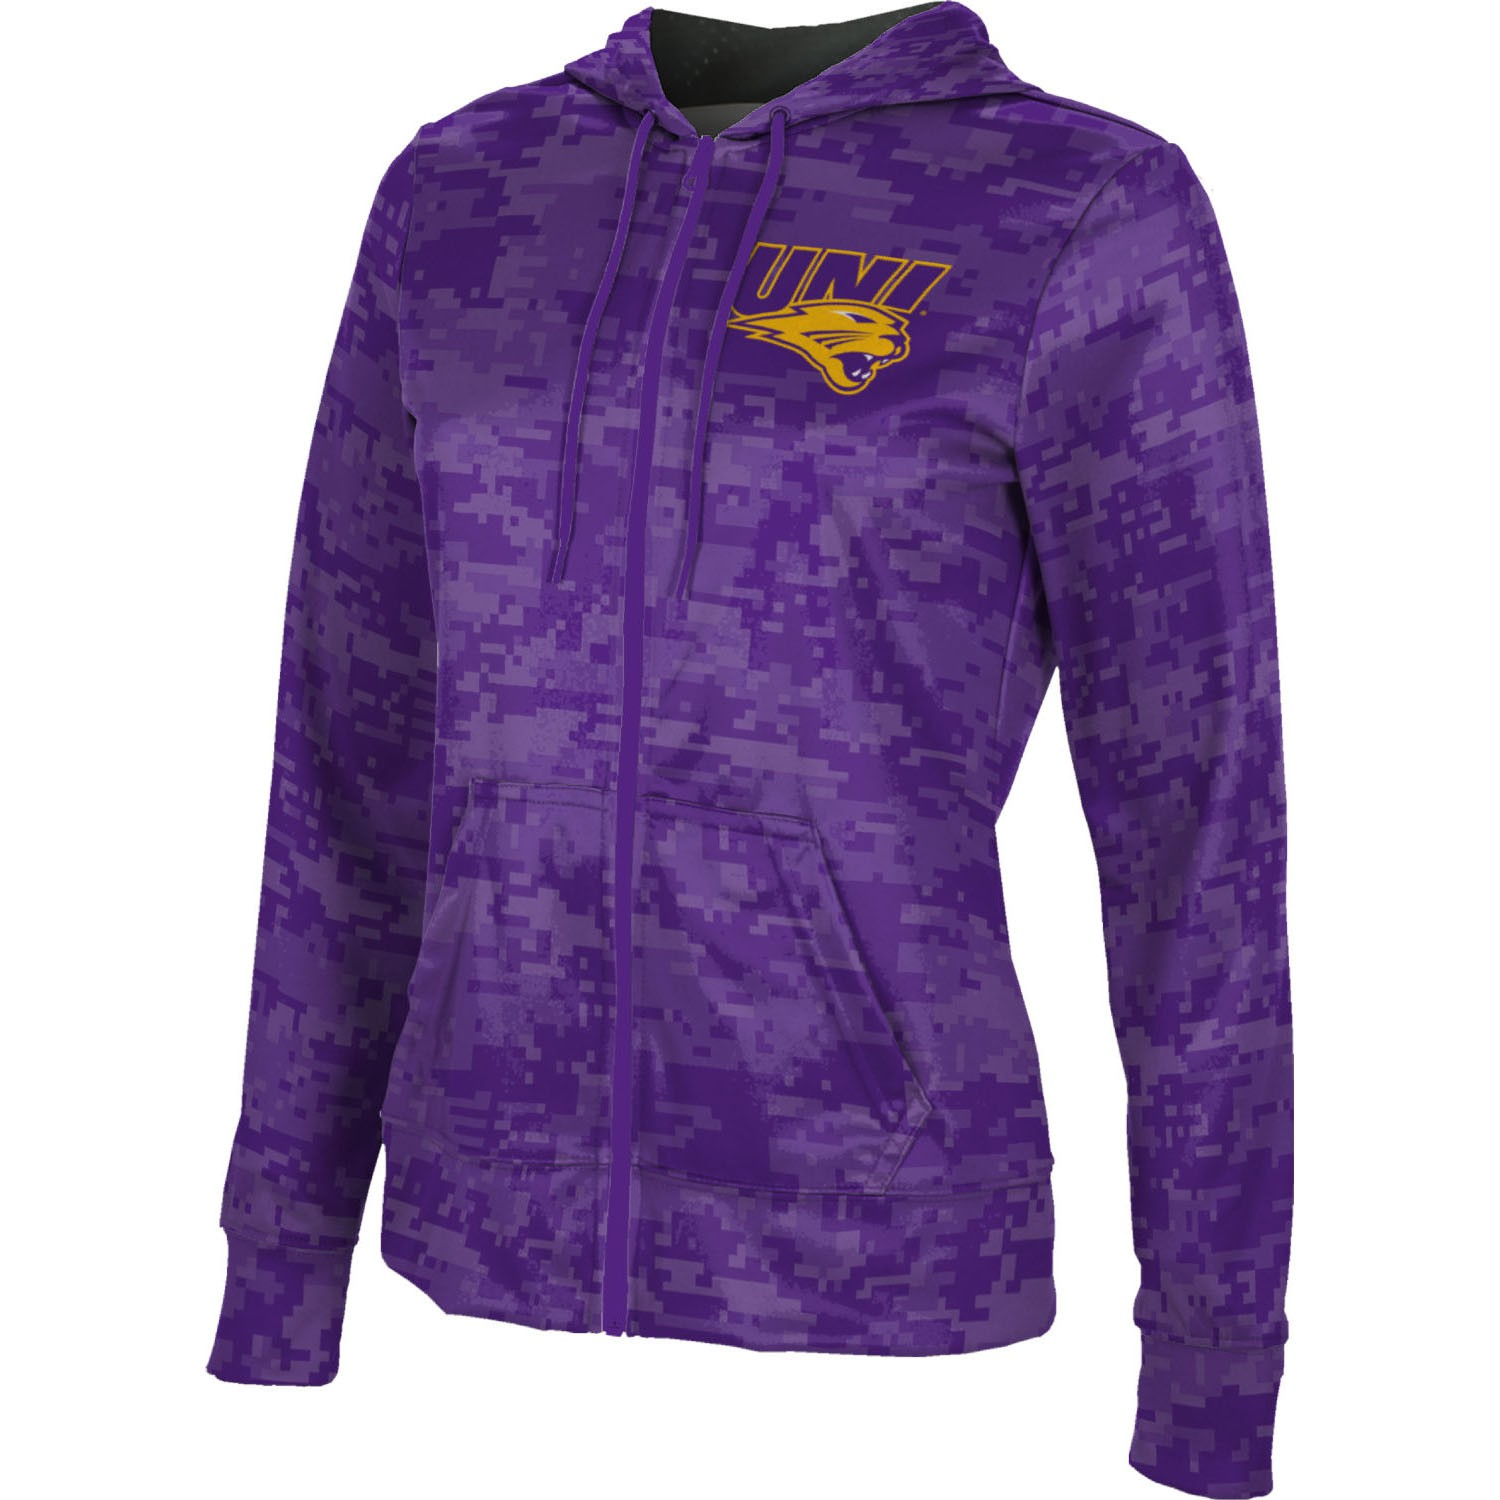 ProSphere Women's University of Northern Iowa Digital Fullzip Hoodie